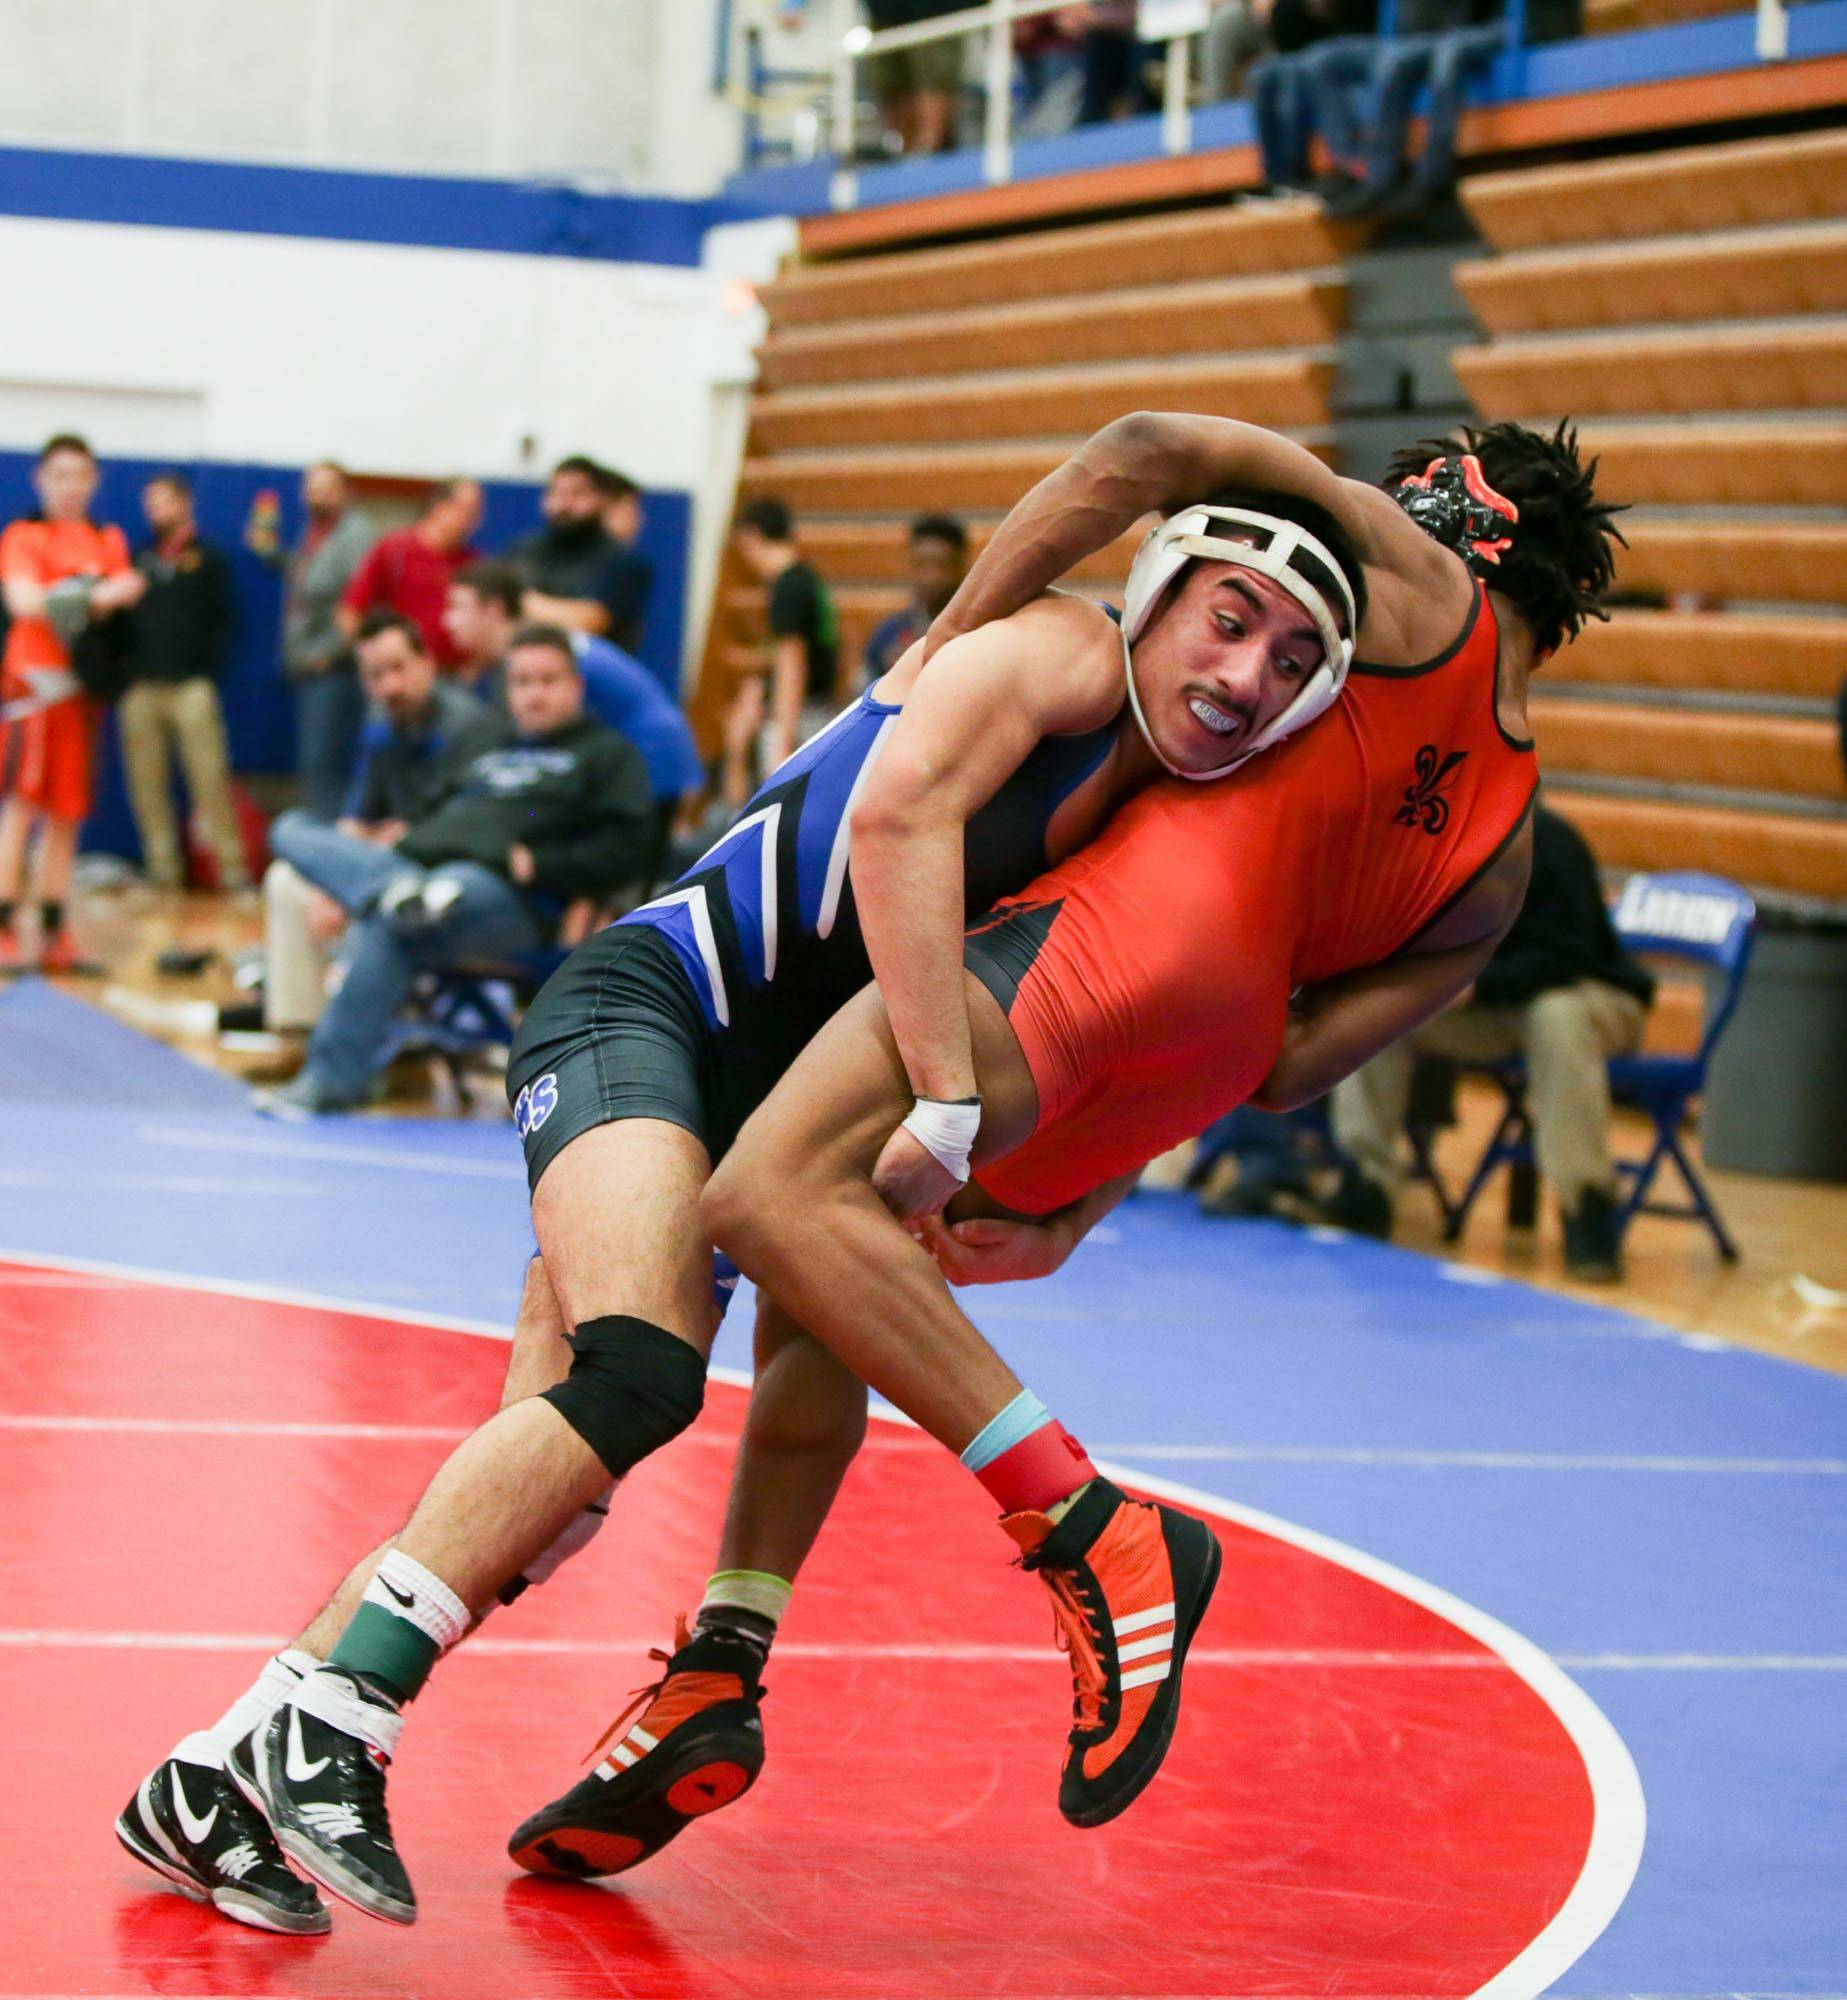 Larkin's Hugo Barraza shoots the legs of St. Charles East's Louis Gordon during their 132-pound match at Larkin Saturday.